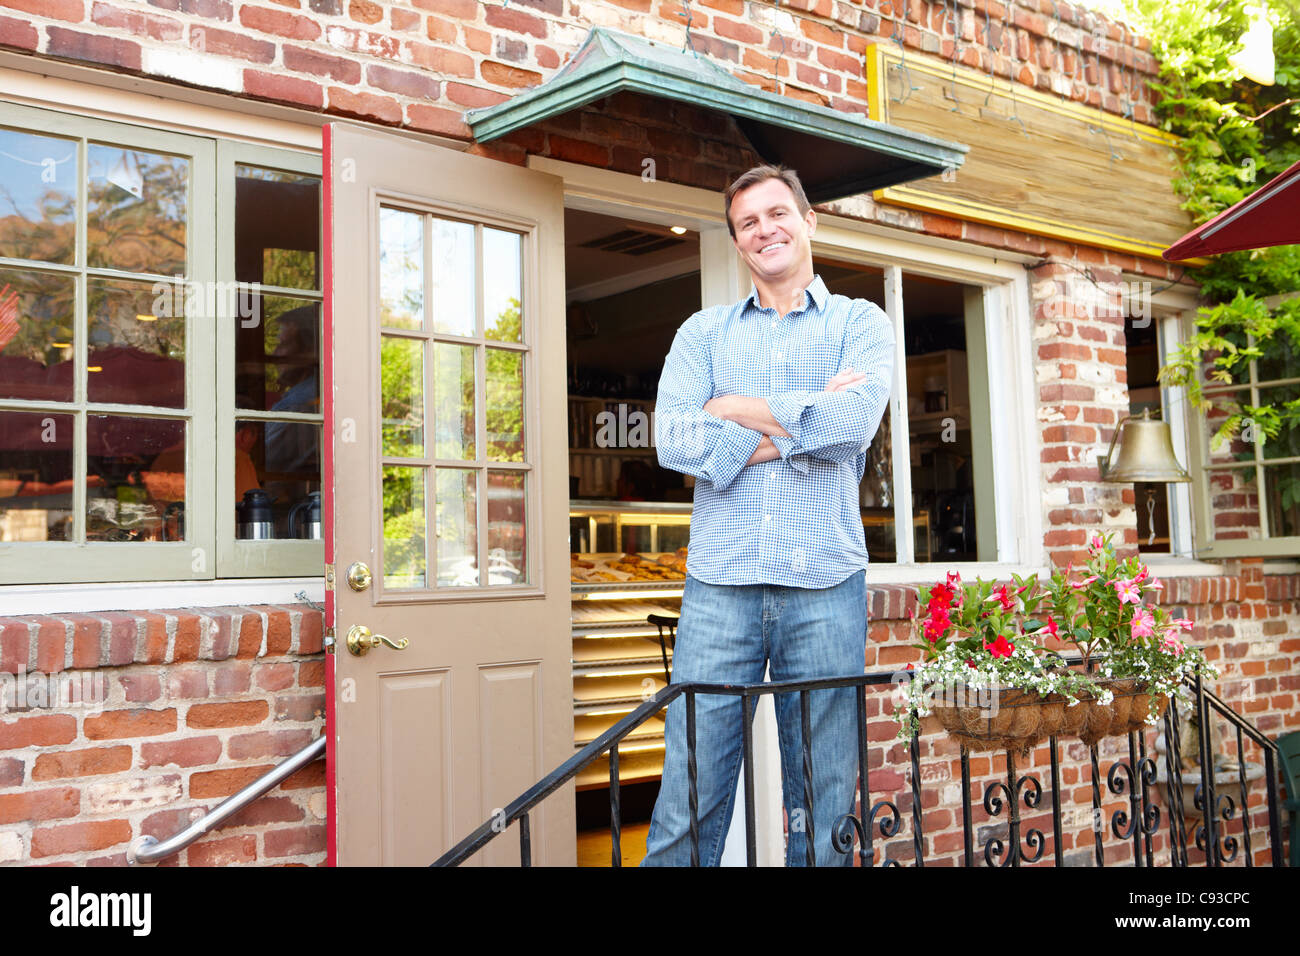 Man standing outside bakery/café Stock Photo